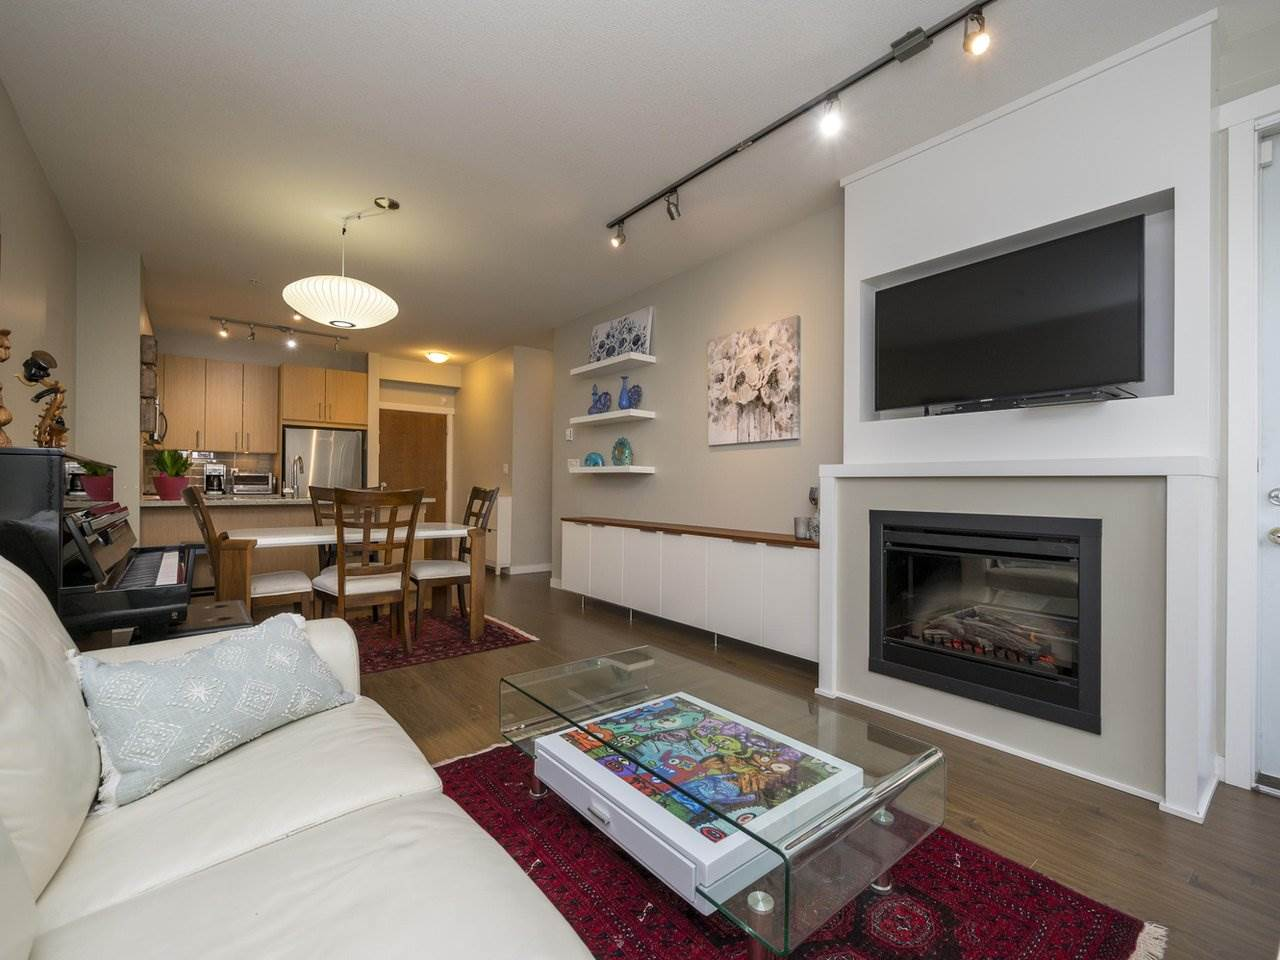 104 119 W 22ND STREET - Central Lonsdale Apartment/Condo for sale, 2 Bedrooms (R2528137) - #6